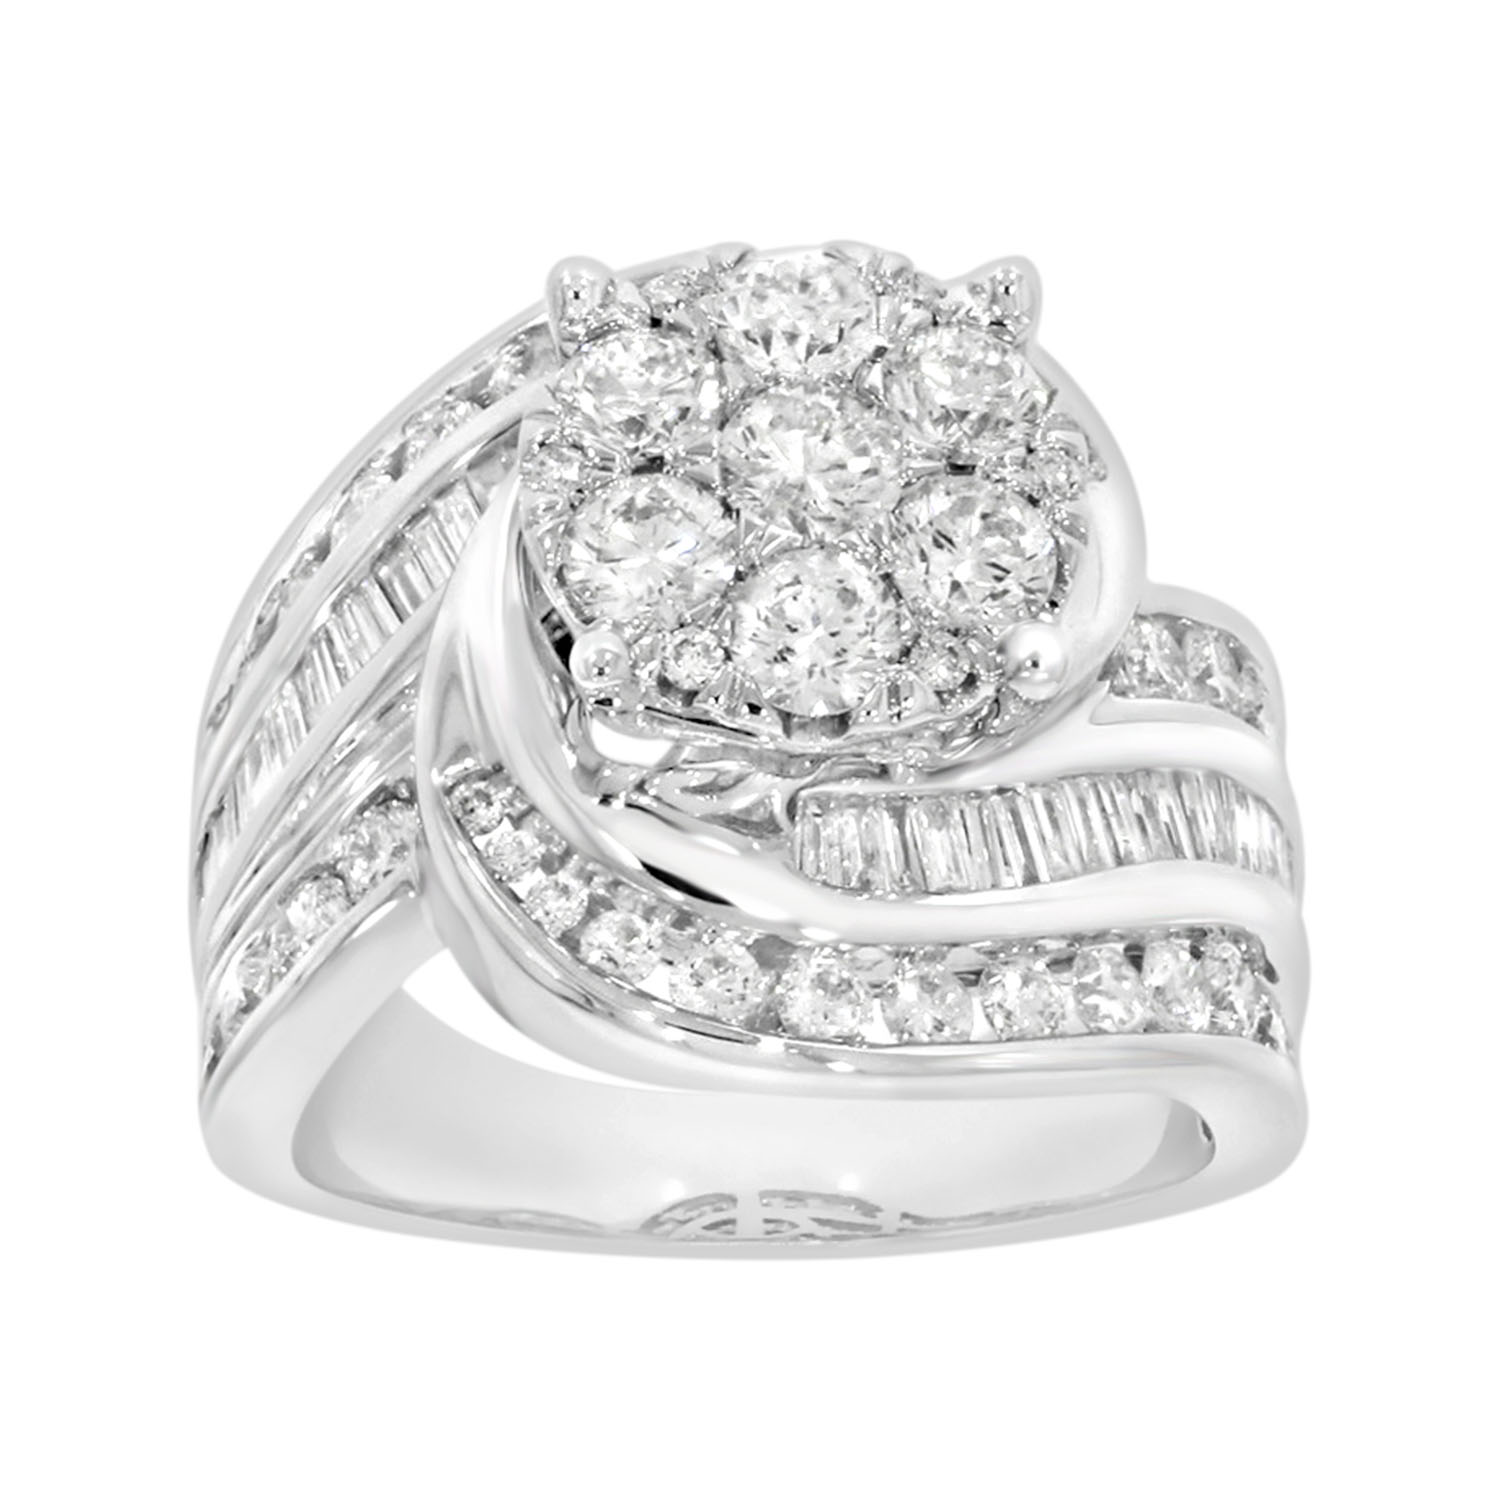 18ct White Gold 3 Carats Diamond Ring